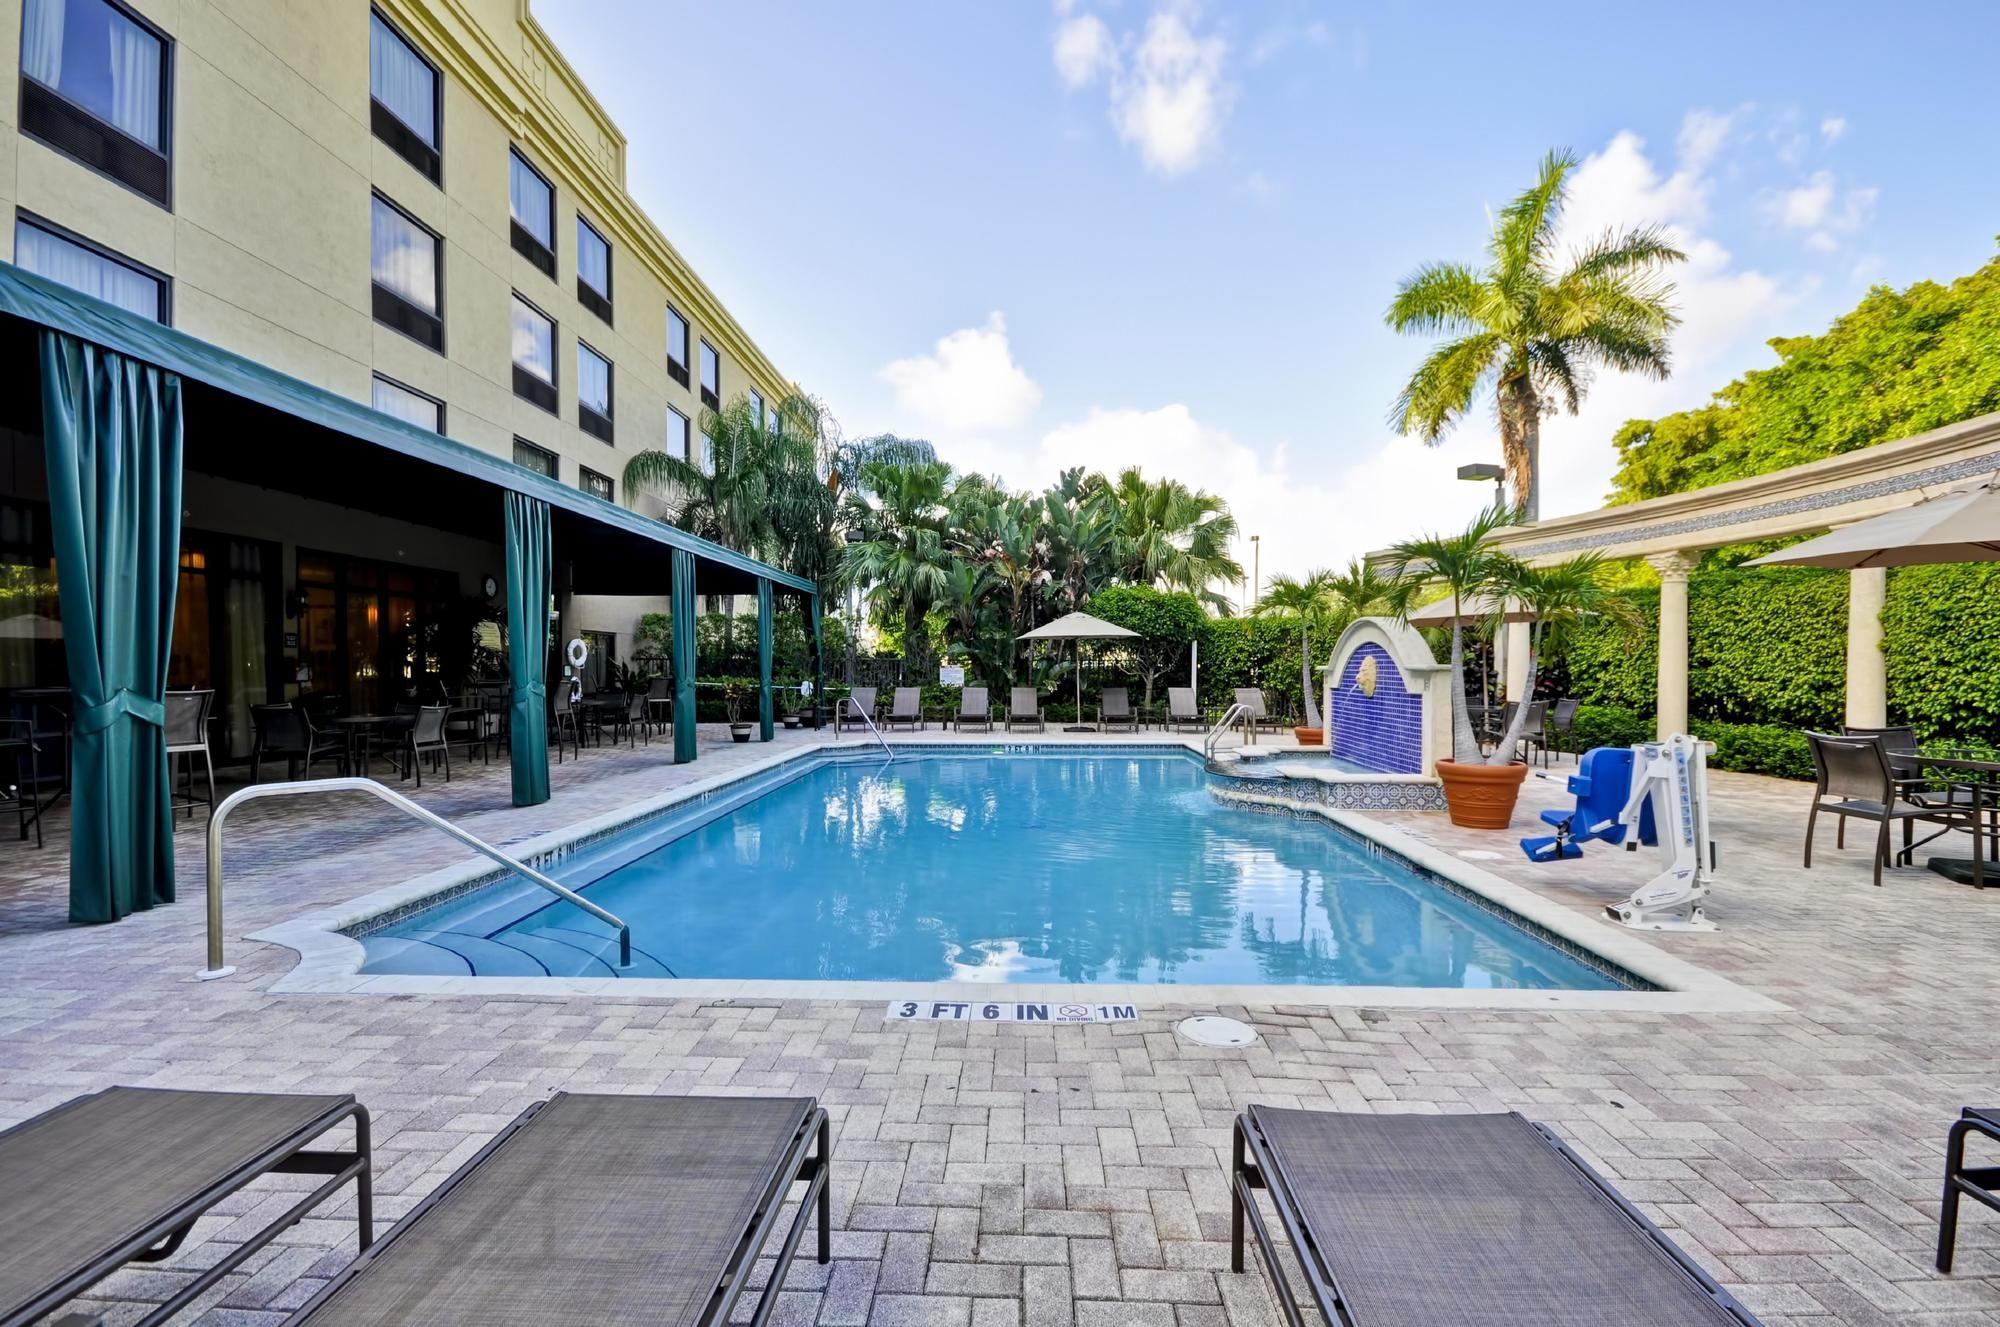 Doubletree Suites By Hilton Deerfield Beach Florida